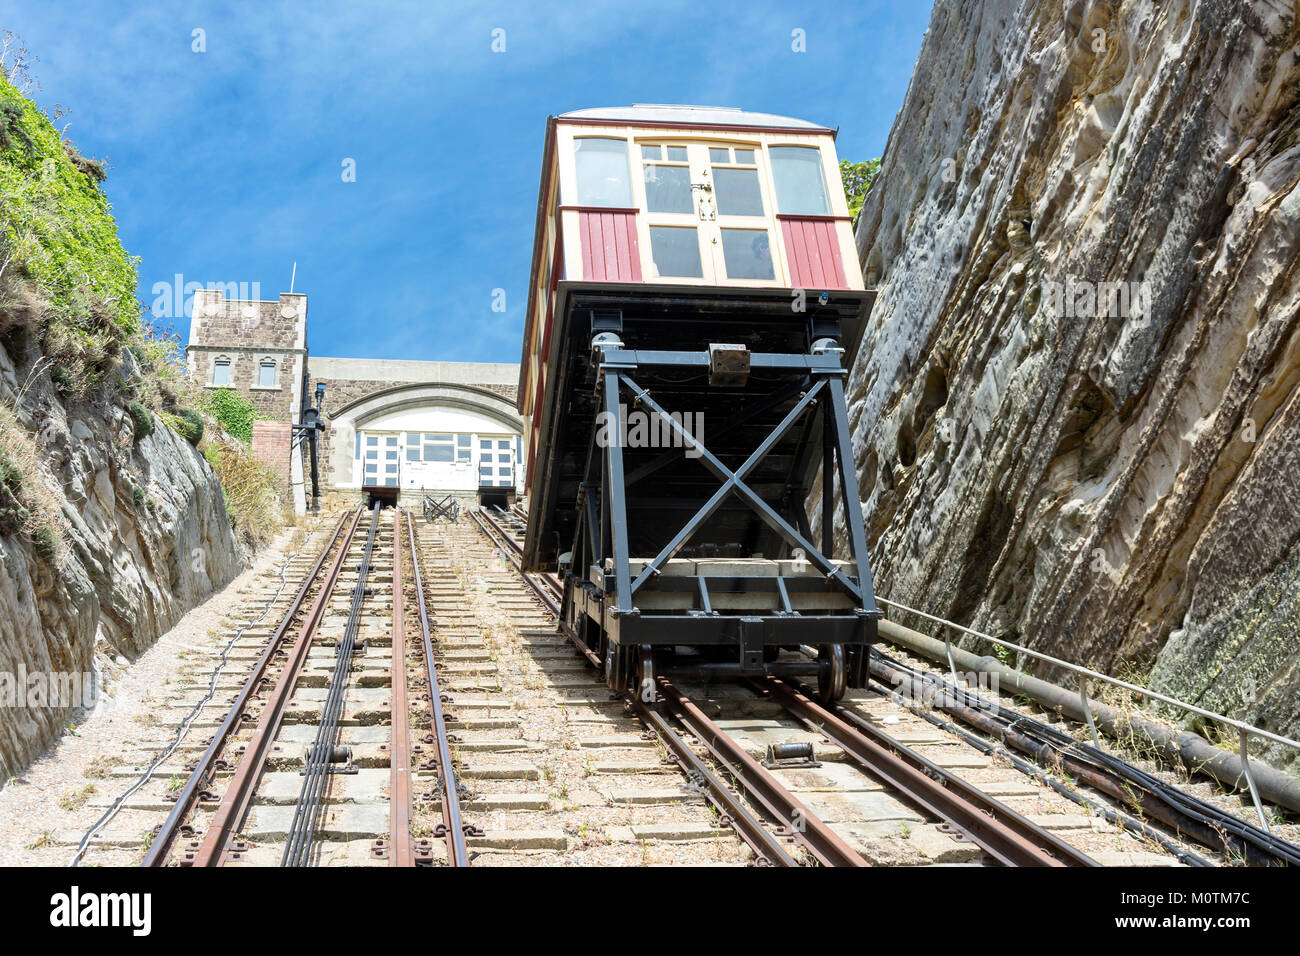 East Hill Lift Railway, Rock-A-Nore Road, Hastings, East Sussex, England, United Kingdom - Stock Image